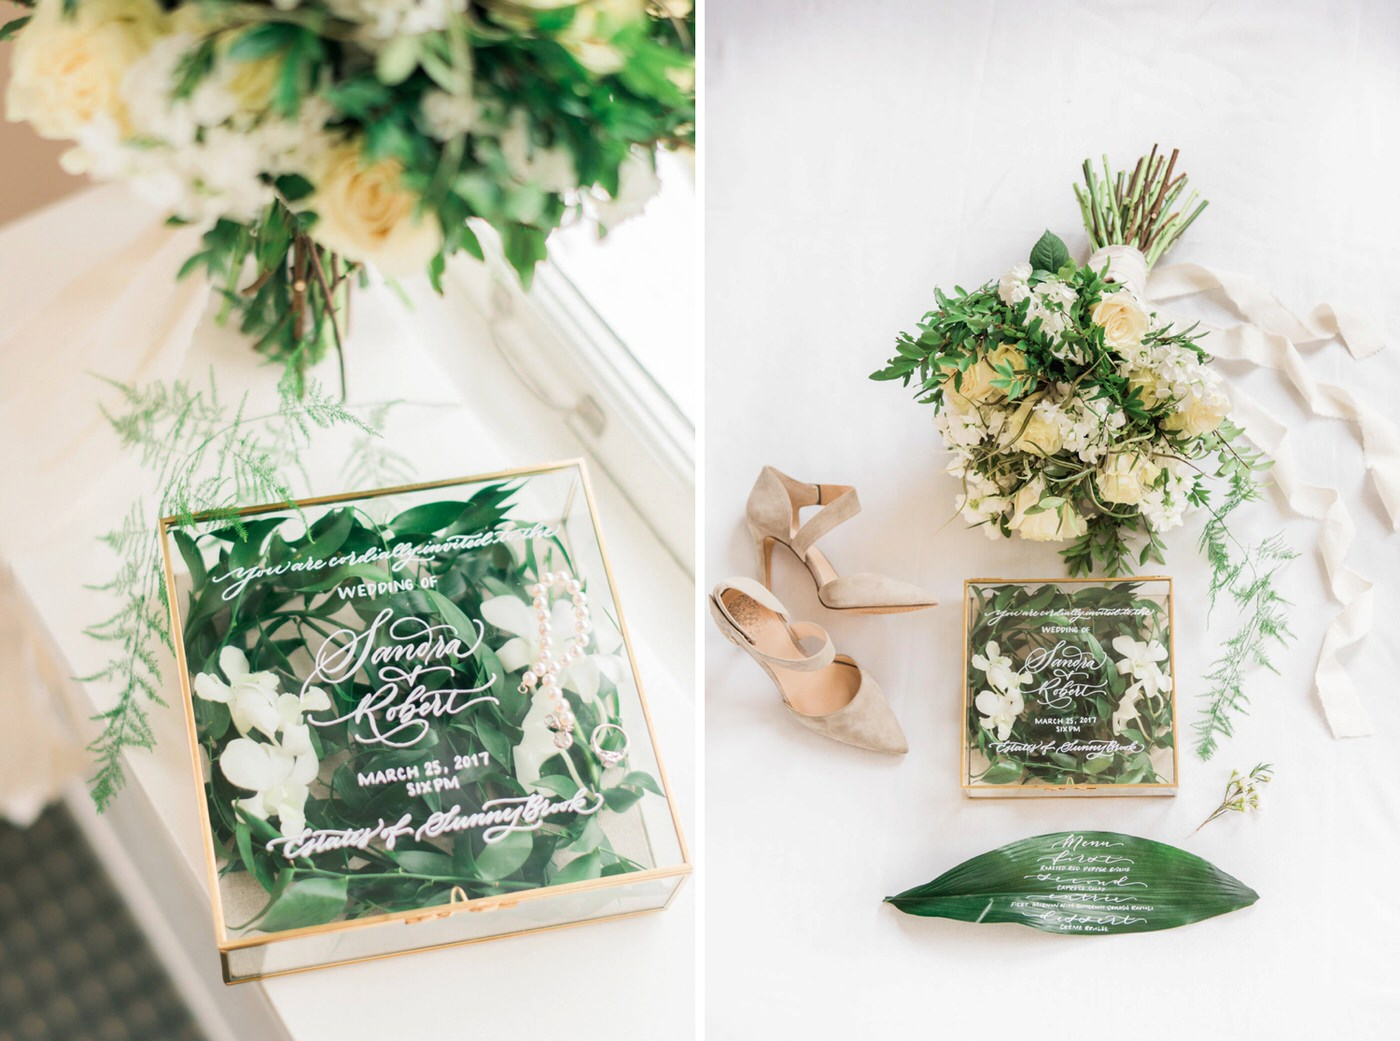 Wedding details at styled wedding shoot at the Estates of Sunnybrook